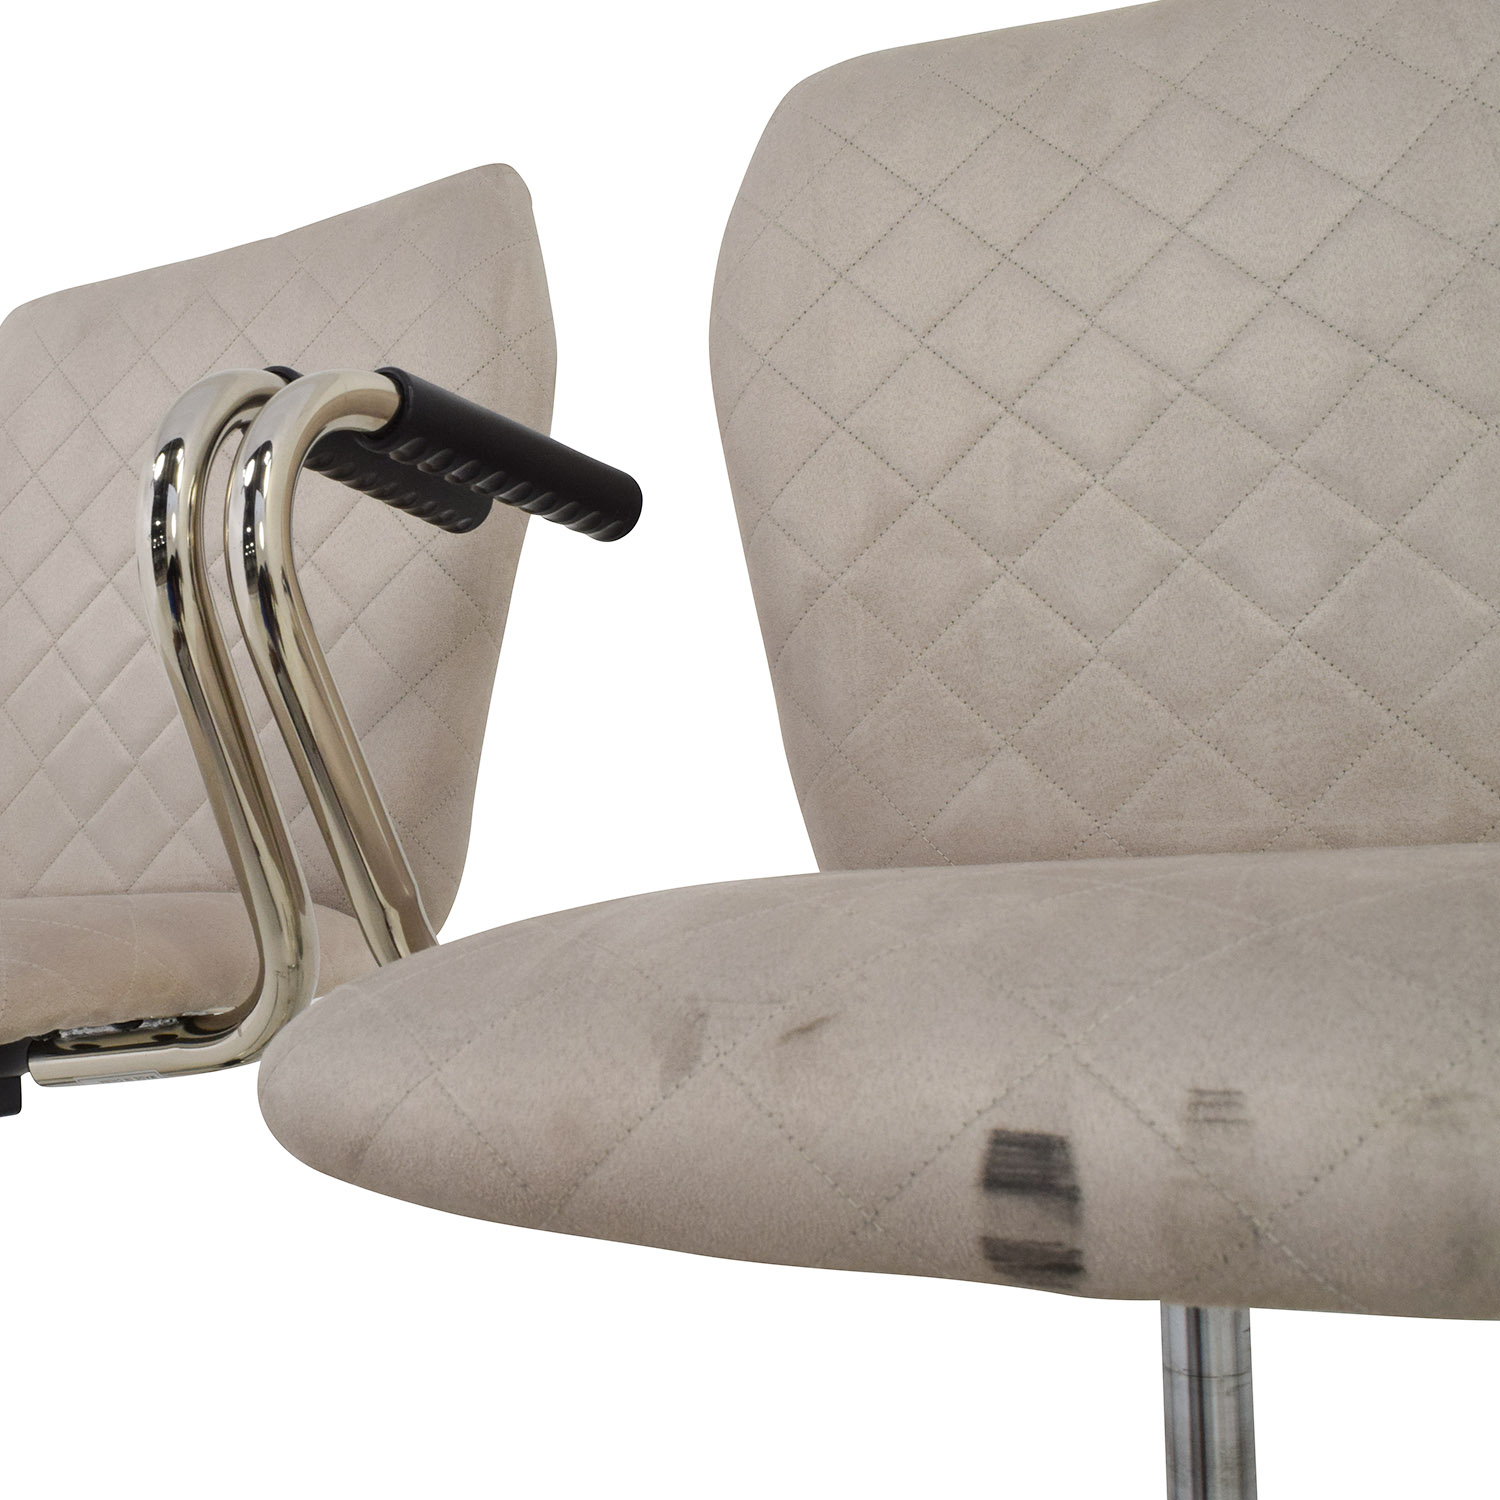 quilted swivel chair bjs beach chairs 90 off beige second hand